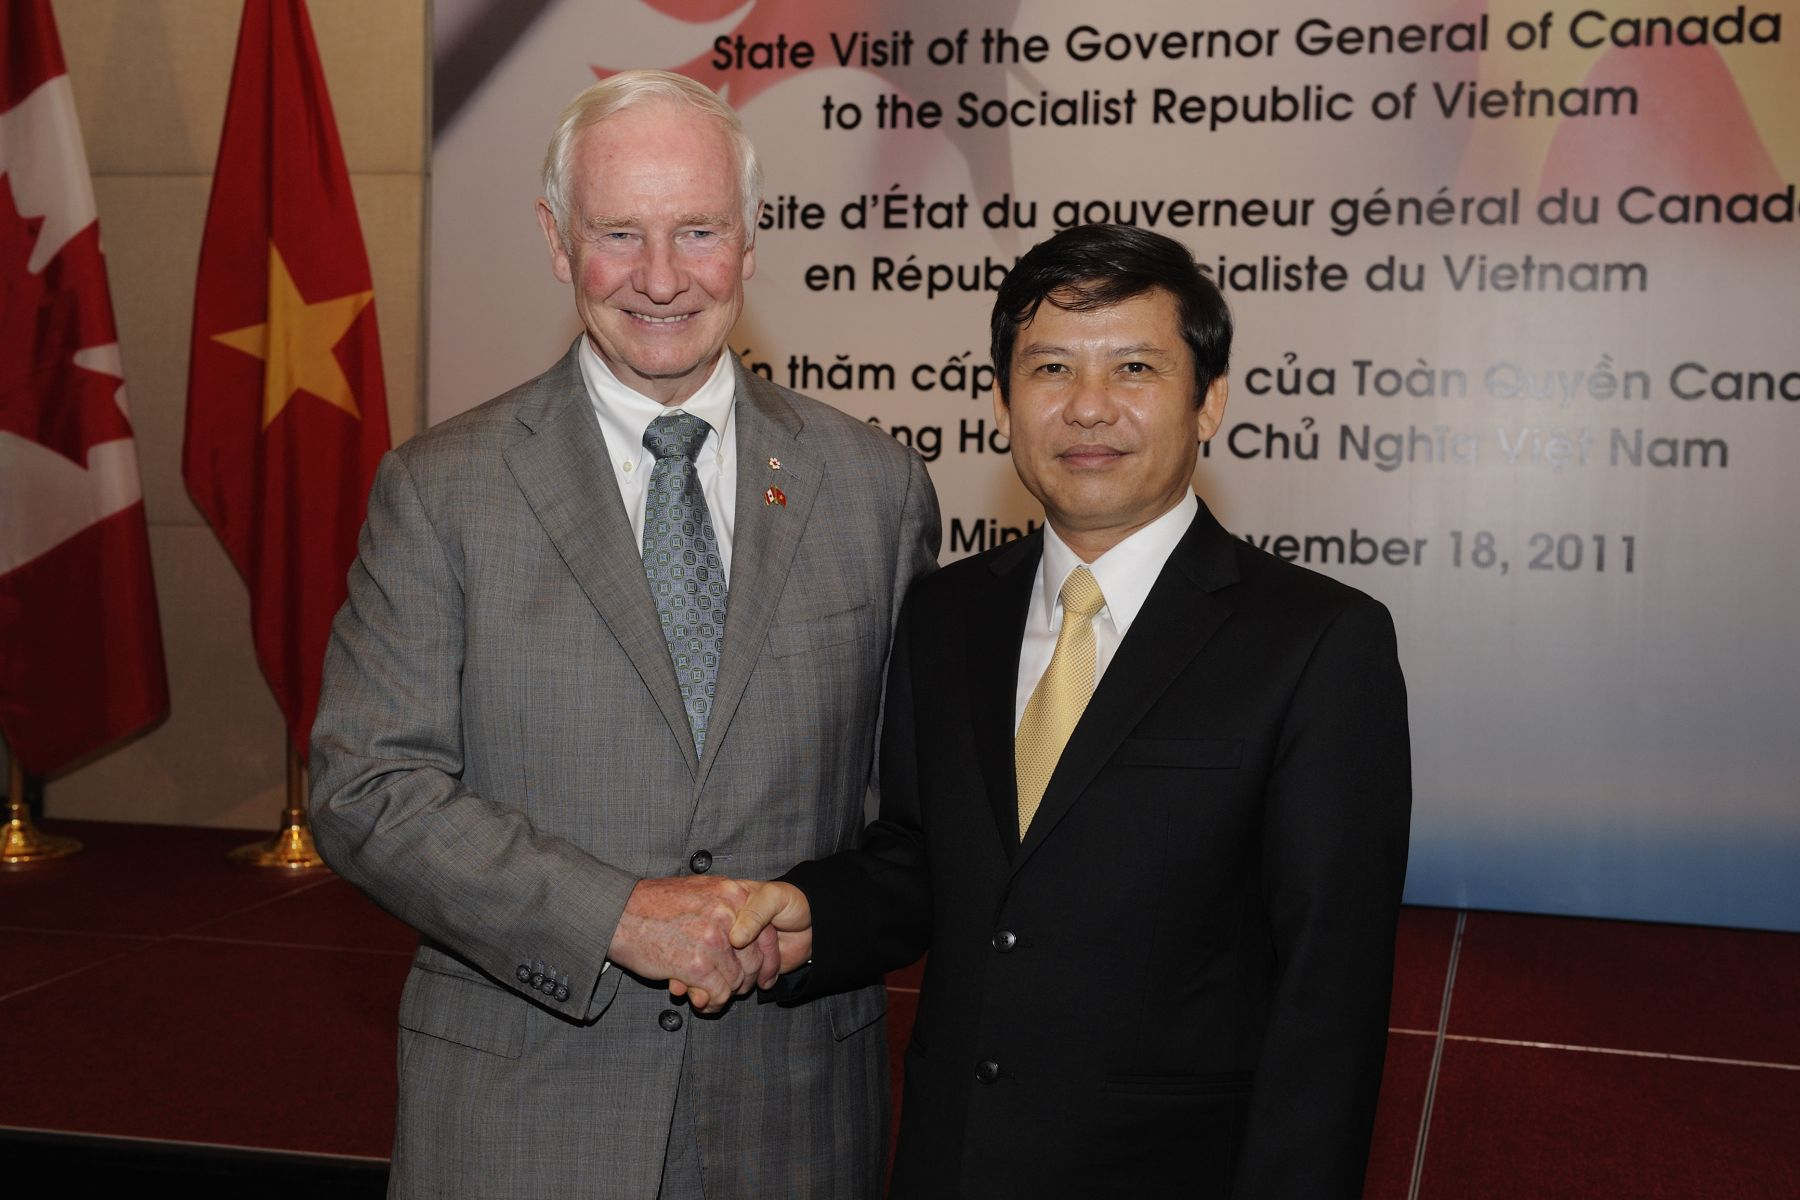 His Excellency took part in a reception with Vietnamese friends of Canada and members of the Canadian community abroad. The Governor General and Mr. Le Hoang Quan, Chairman of the Ho Chi Minh City People's Committee, said a few words during the reception.